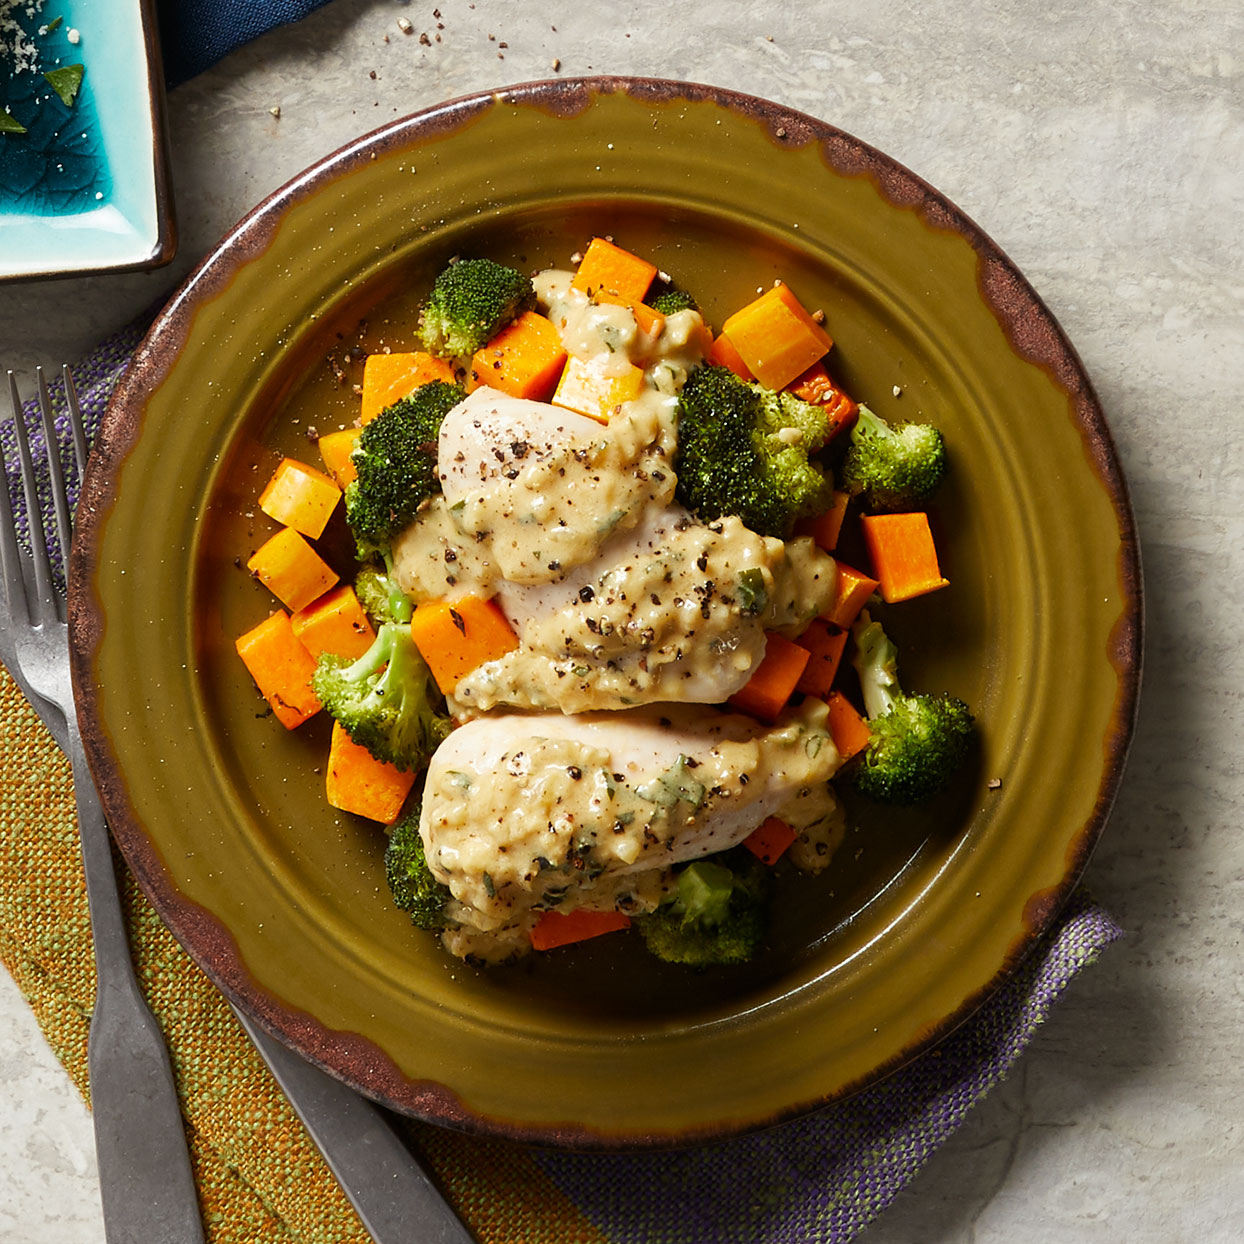 Precubed butternut squash is a timesaver in this easy baked chicken recipe. Look for it in the produce section. Source: Diabetic Living Magazine, Winter 2020